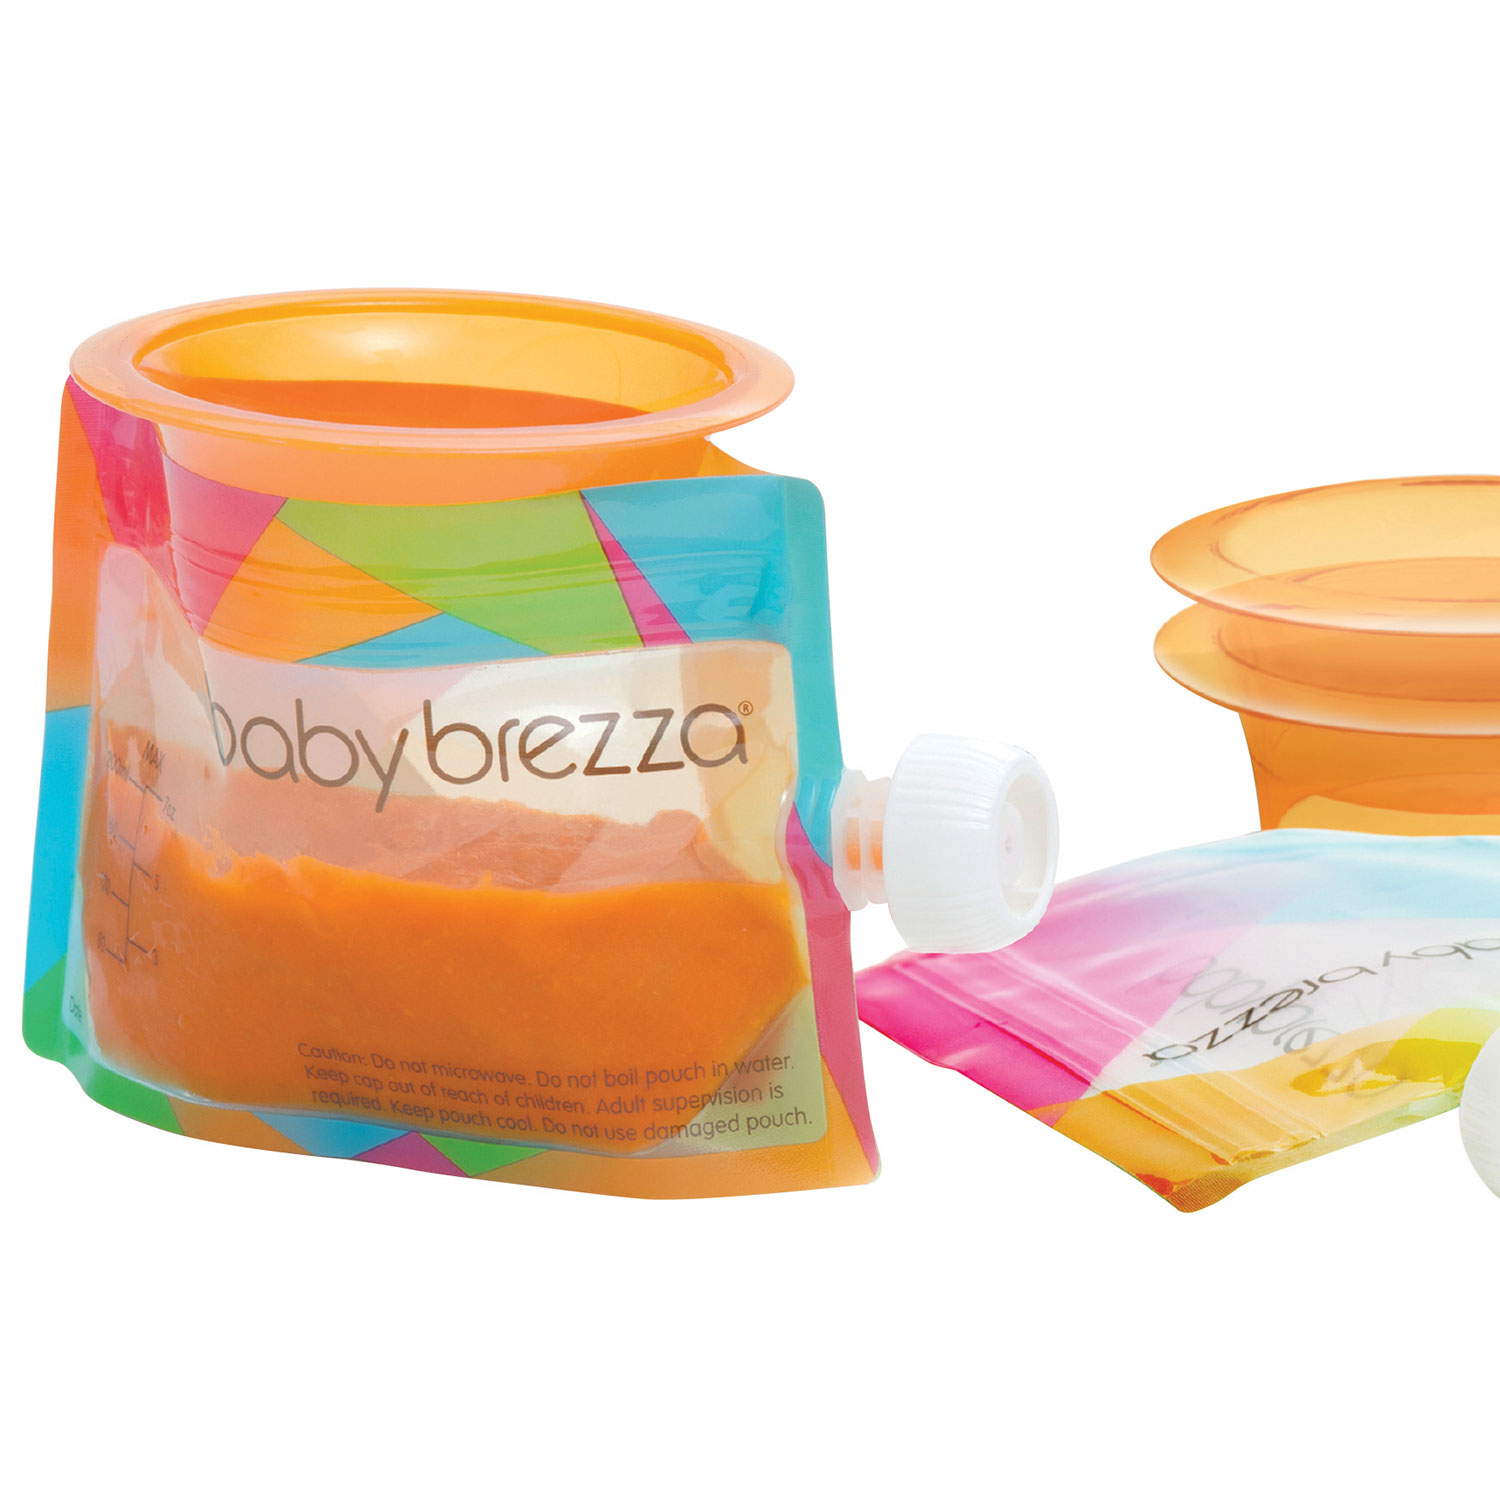 baby brezza overview - baby brezza reusable food pouches